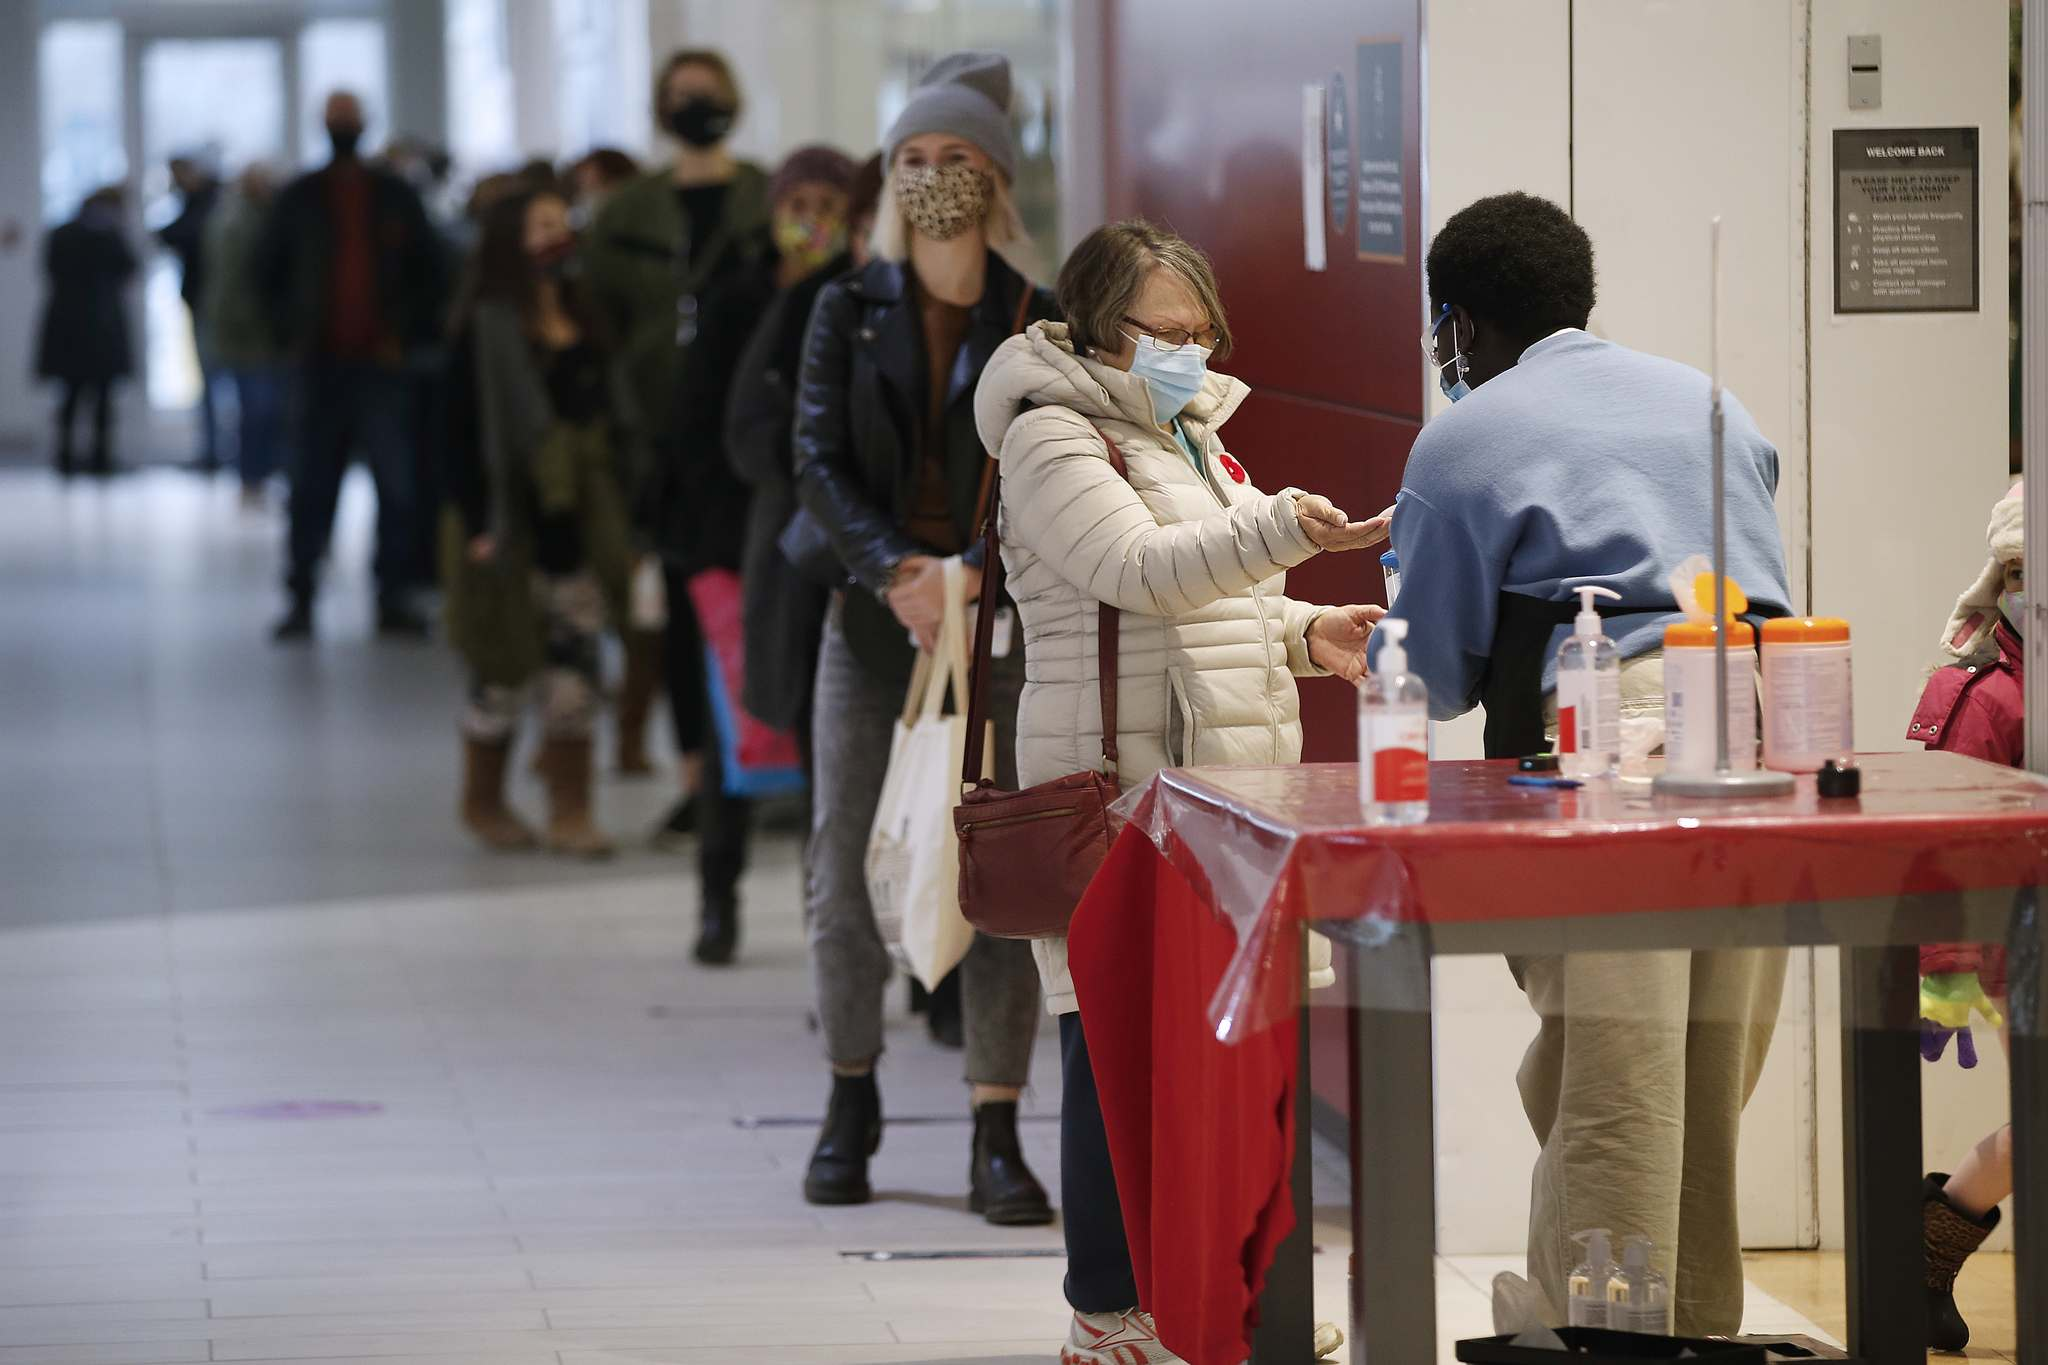 JOHN WOODS / WINNIPEG FREE PRESS</p><p>Shoppers maintain social distance and apply hand sanitizer before entering a store at Kildonan Place. A new report suggests the pandemic has had a transforming effect on consumer behaviour.</p>